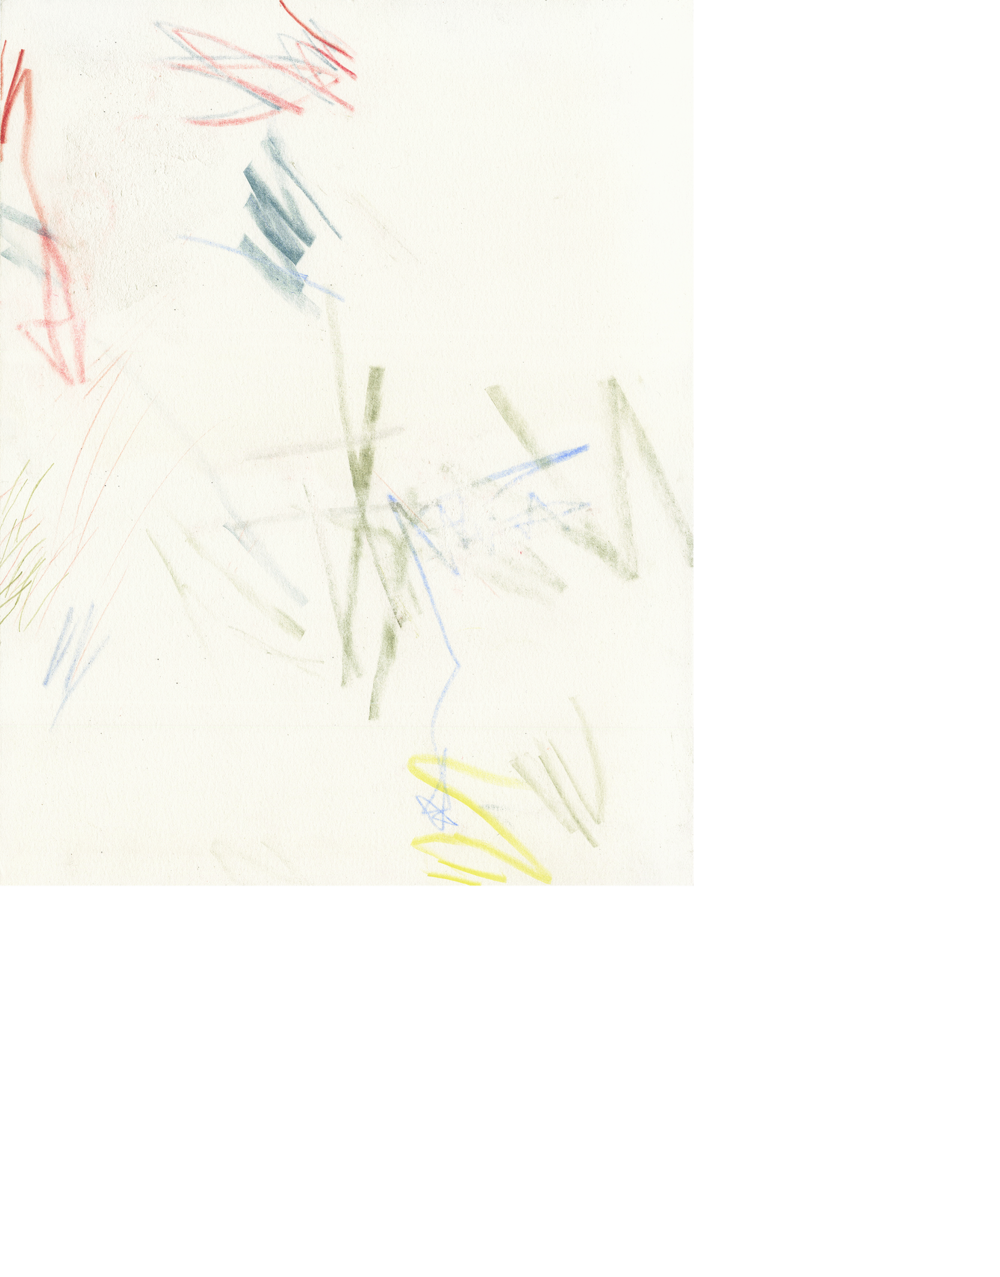 Untitled (cm.15.26), 2015   colored pencil, crayon on paper   14 x 11 inches